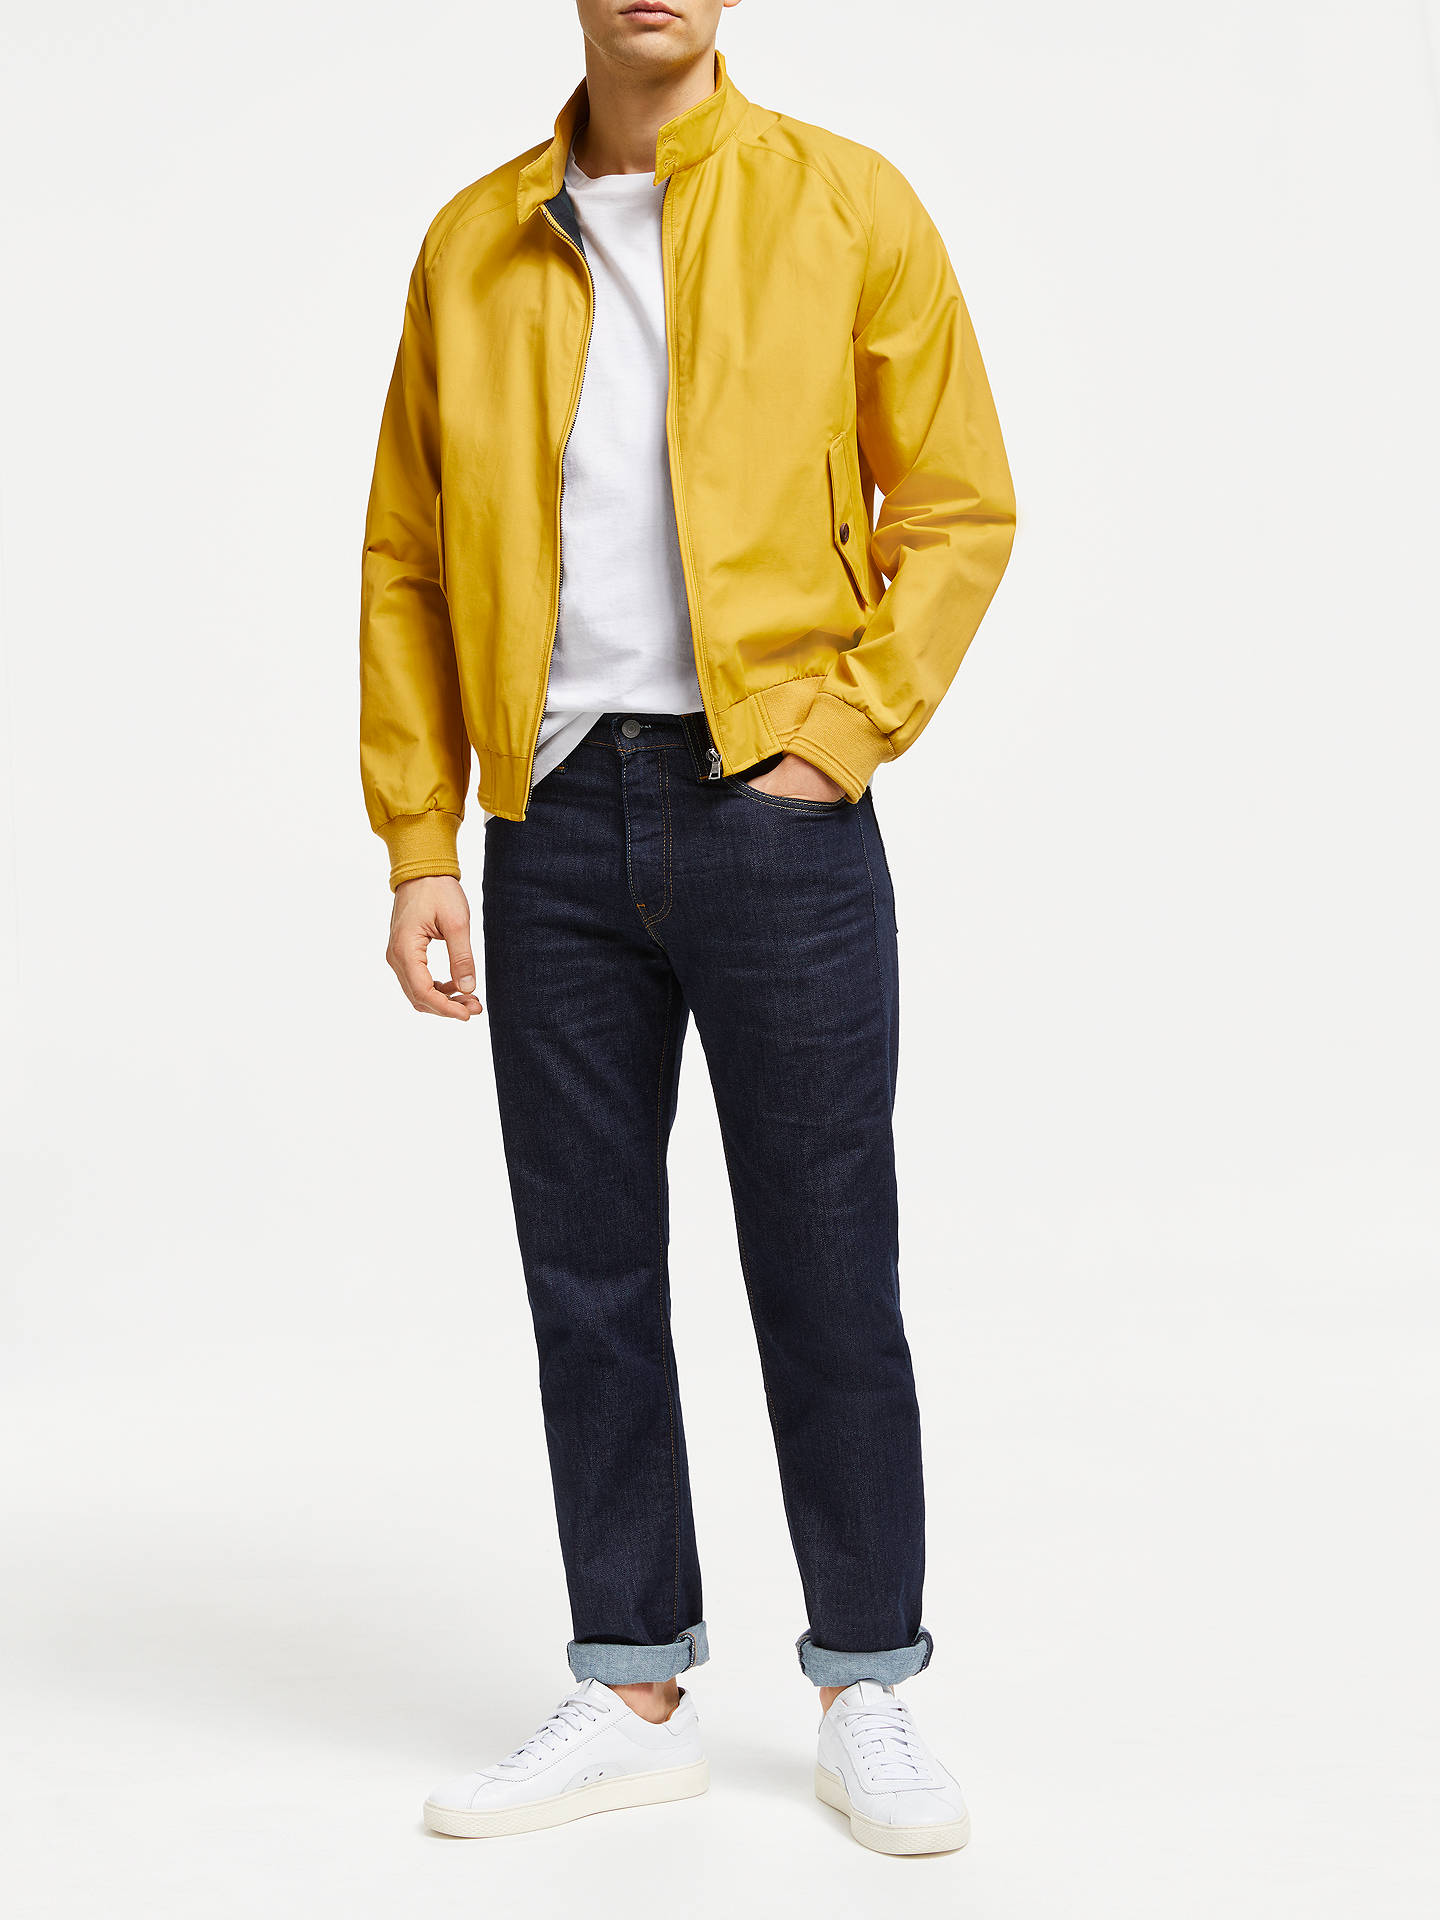 Buy John Lewis & Partners Shower Resistant Wallace Harrington Jacket, Yellow, S Online at johnlewis.com